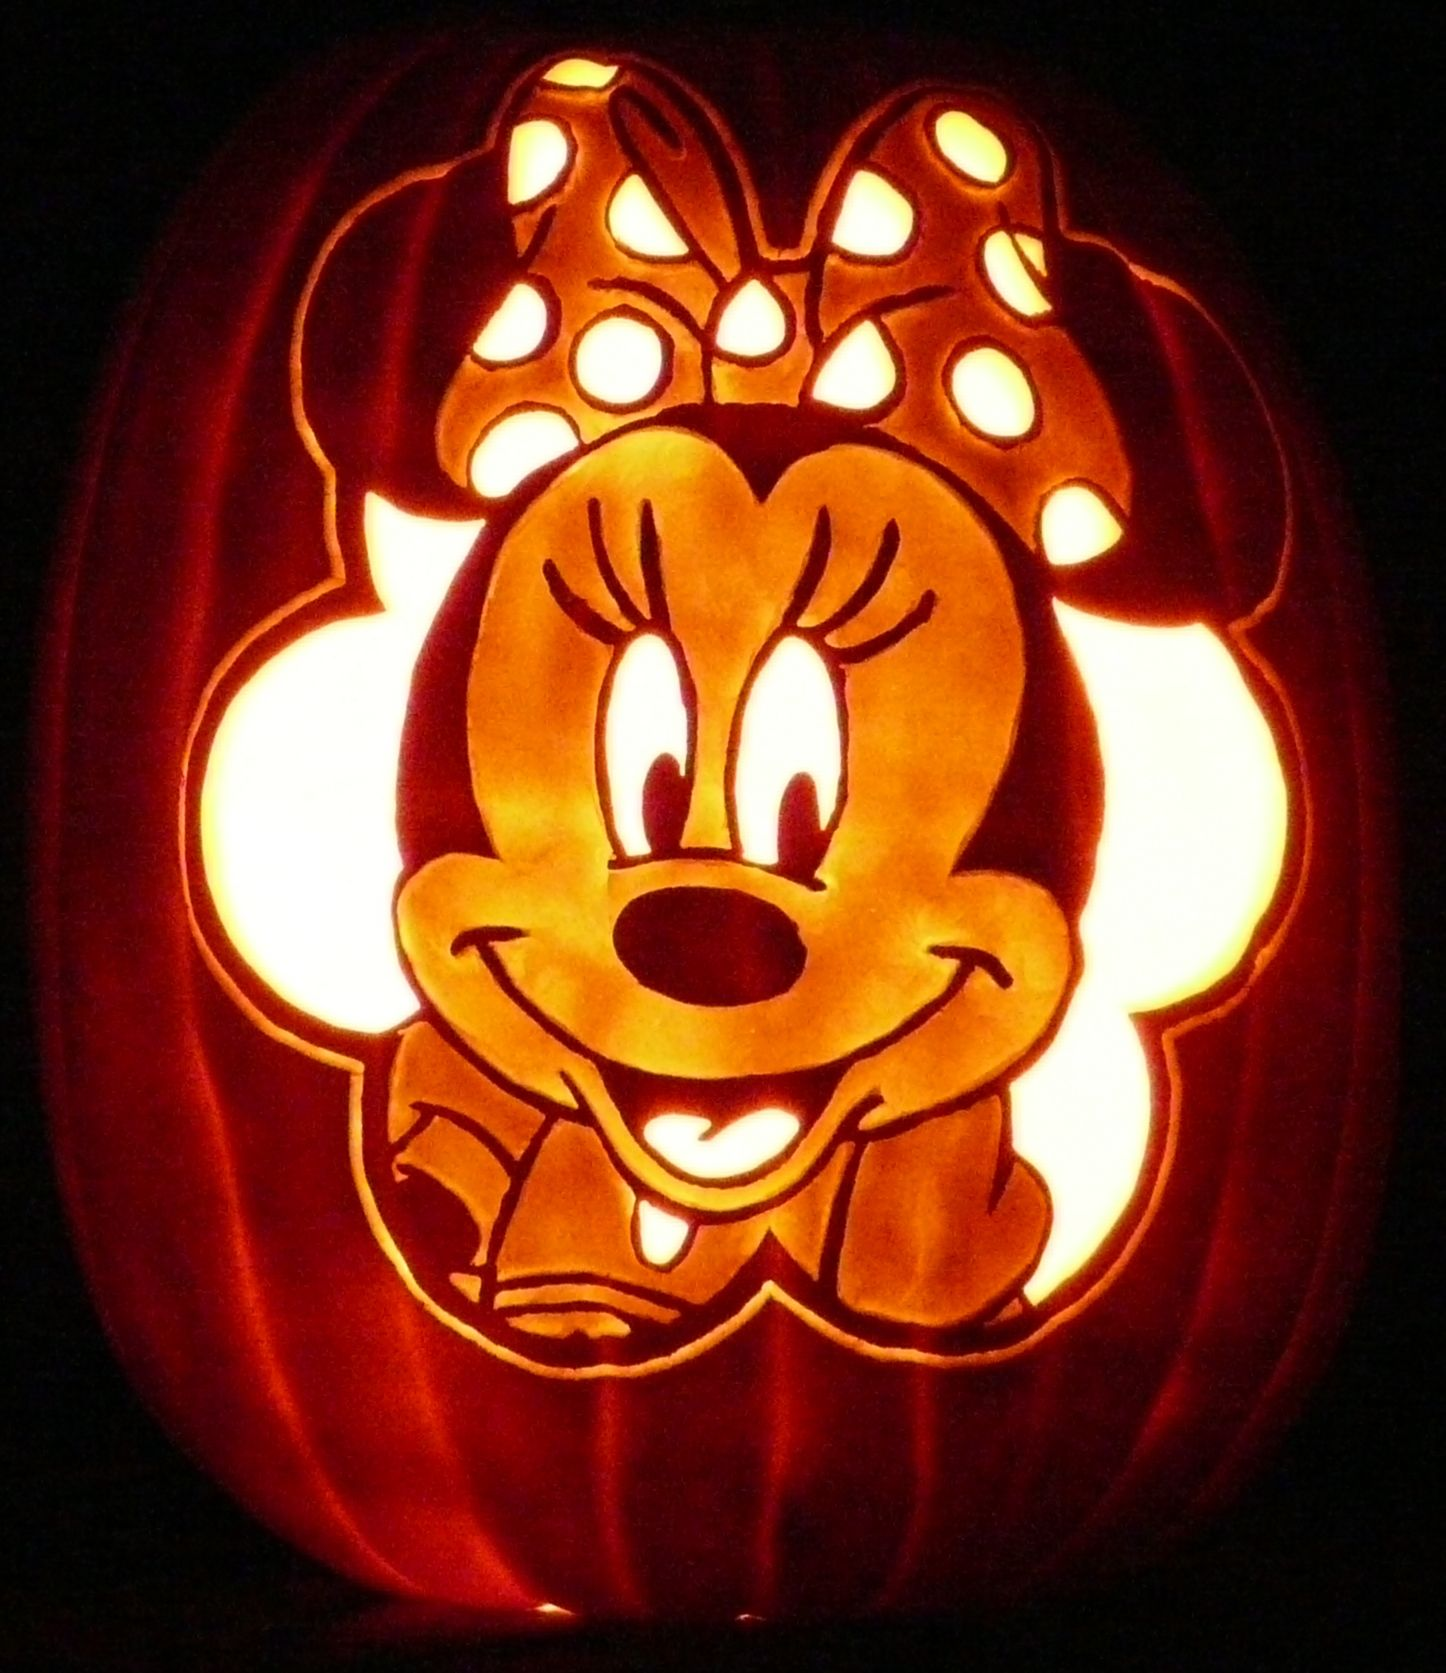 My granddaughter\u0027s favorite character is Minnie Mouse, so I carved - Minnie Mouse Halloween Decorations